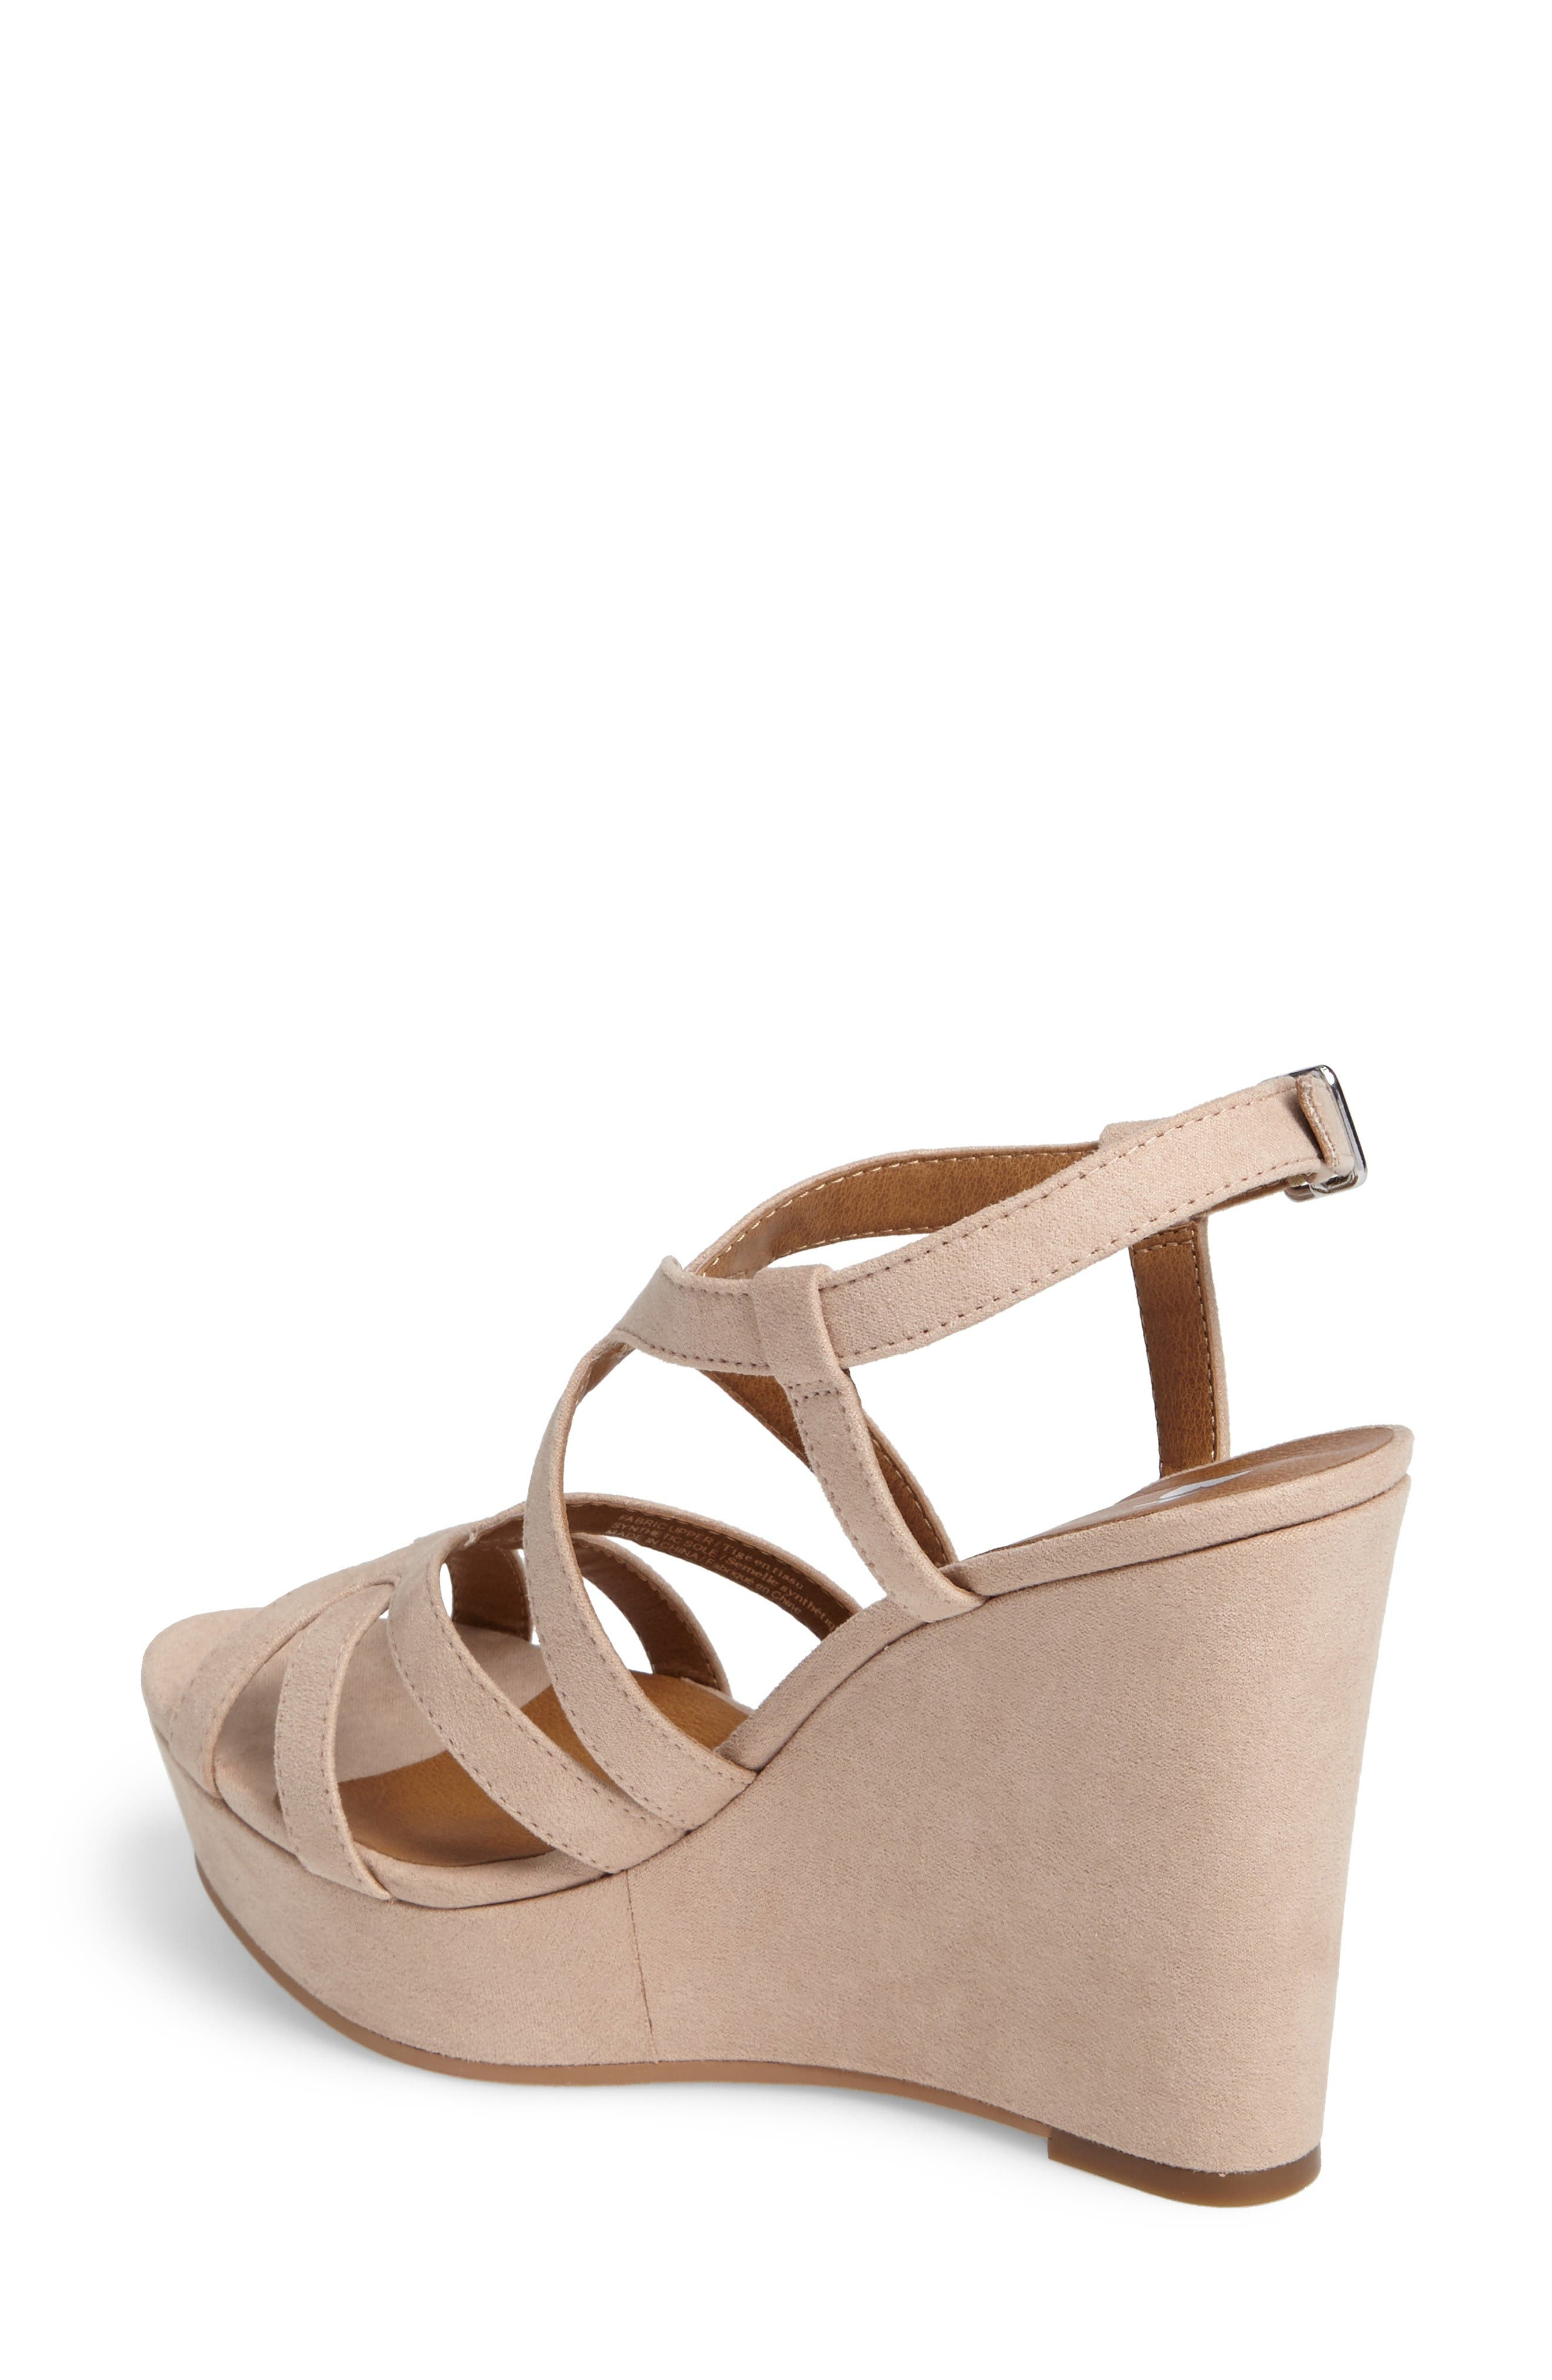 Alternate Image 2  - BP. Sky Wedge Sandal (Women)